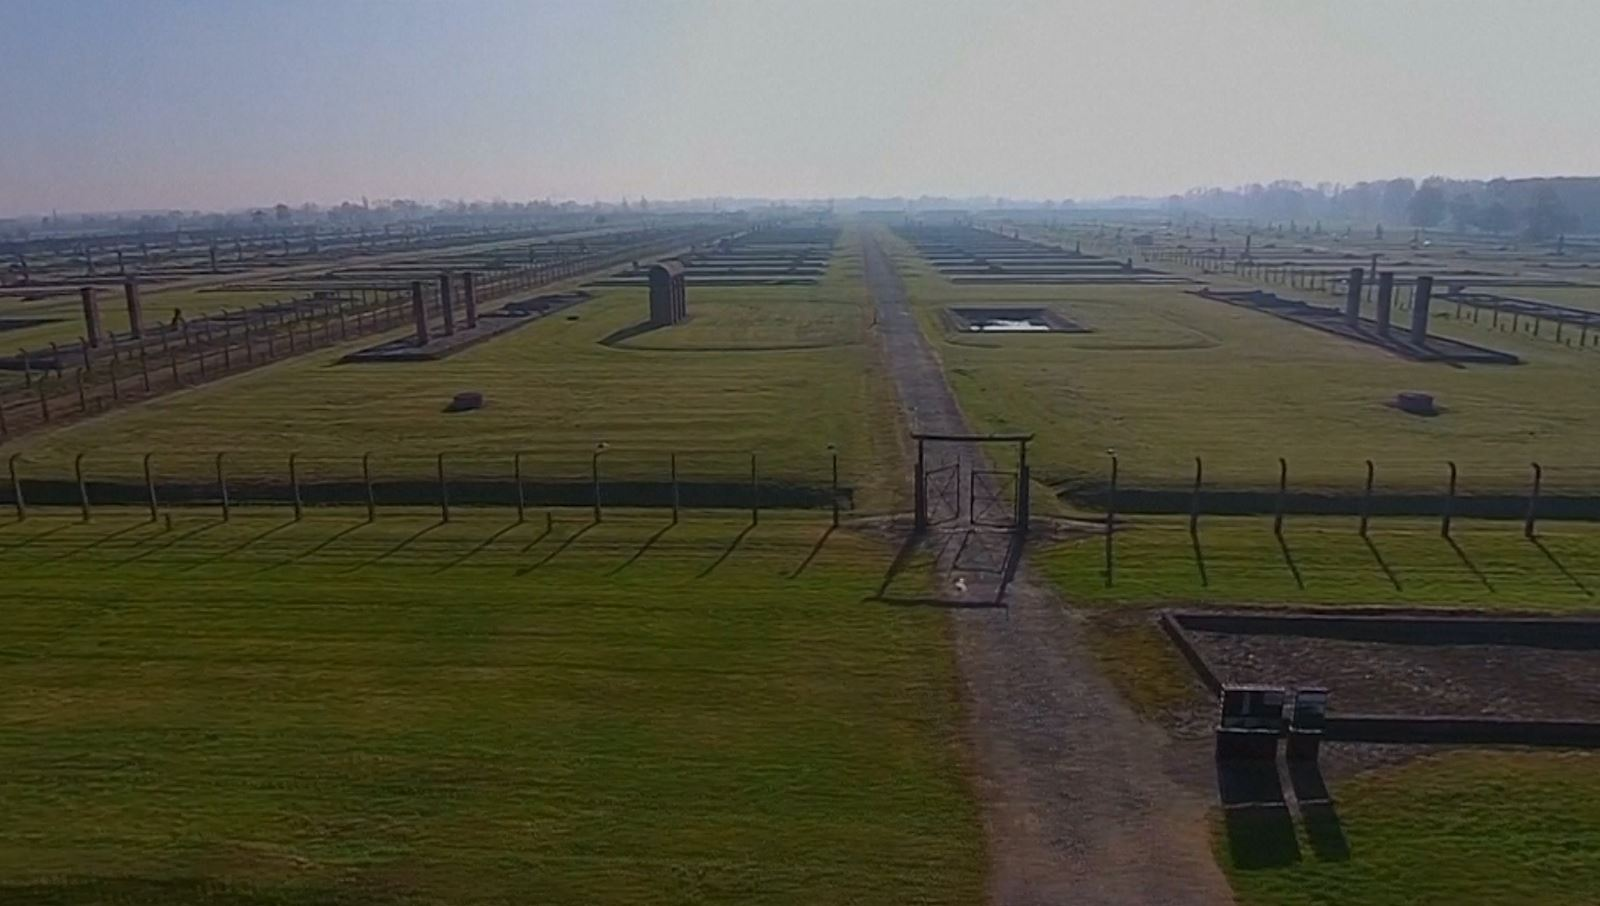 an introduction to the auschwitz concentration camp Dachau was the first camp, started in southern germany, 1933 after that, more camps followed, springing up in countries all over europe some of the most infamous camps are auschwitz, bergen-belsen, majdanek, treblinka, sobibor, and chelmno.